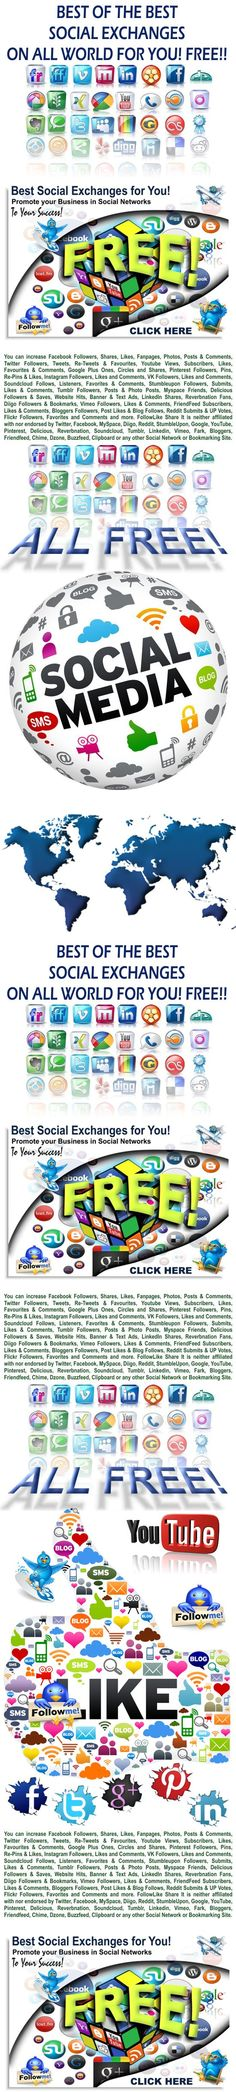 Social Exchanges * BEST OF THE BEST HERE! Only the best and trusted Social Exchanges. Quality and Security.  * ALL FREE! Visit! > http://facinews.weebly.com